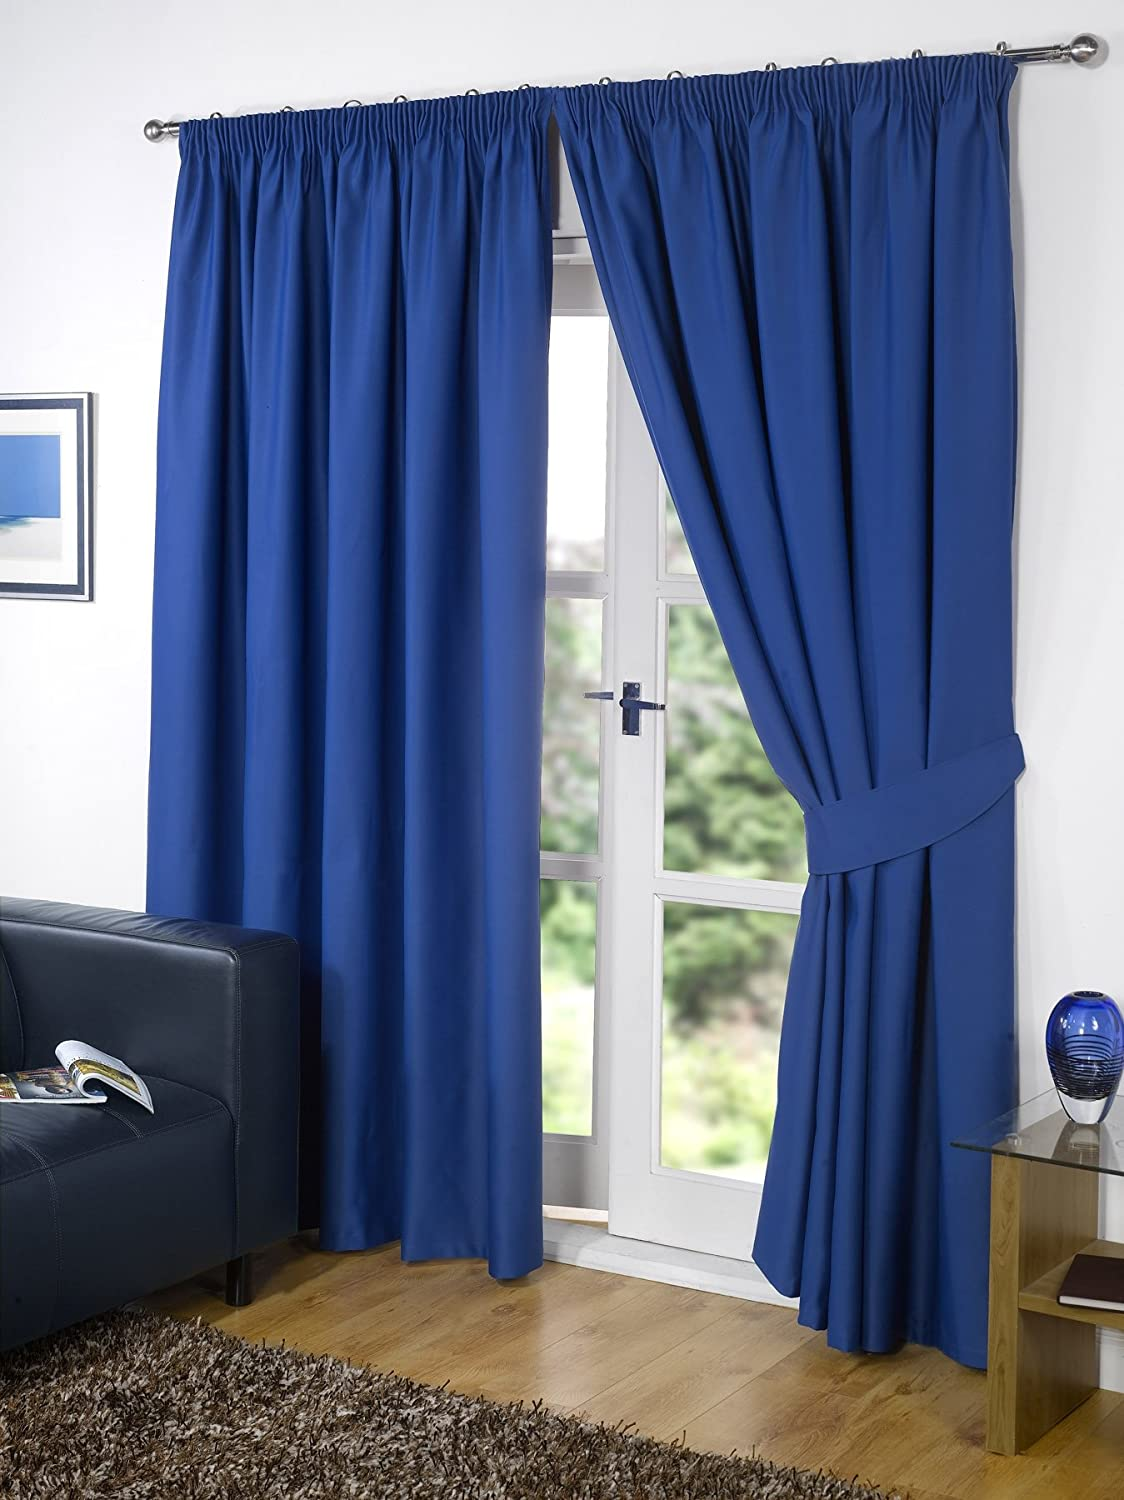 Cobalt blue curtains - Pair Of Blue 90 Width X 54 Drop Supersoft Thermal Blackout Curtains Bedroom Curtain Readymade Including Pair Of Matching Tie Backs Winter Warm But